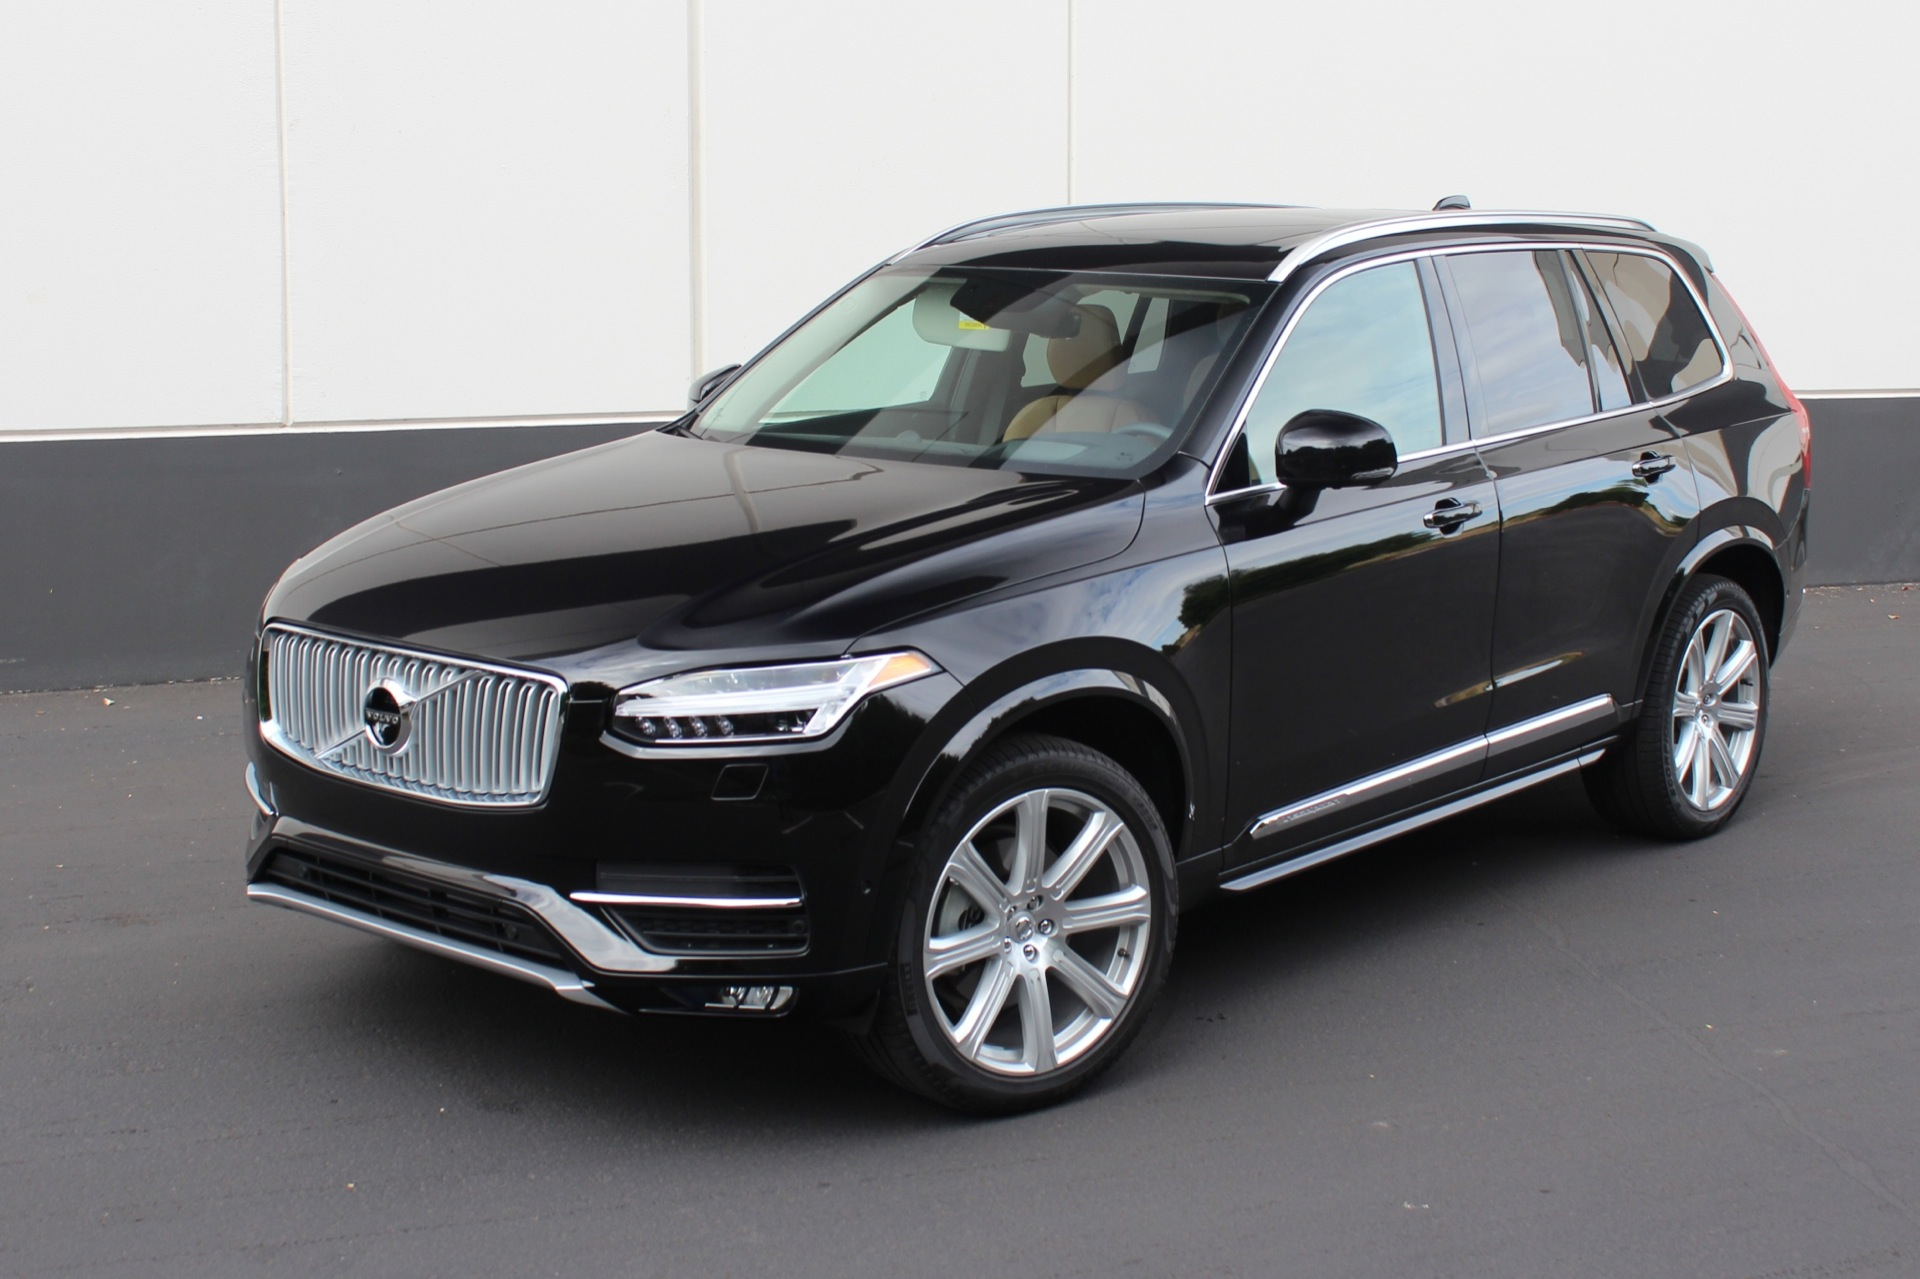 Volvo Xc90 Starting Price Down To 44 945 With New T5 Model